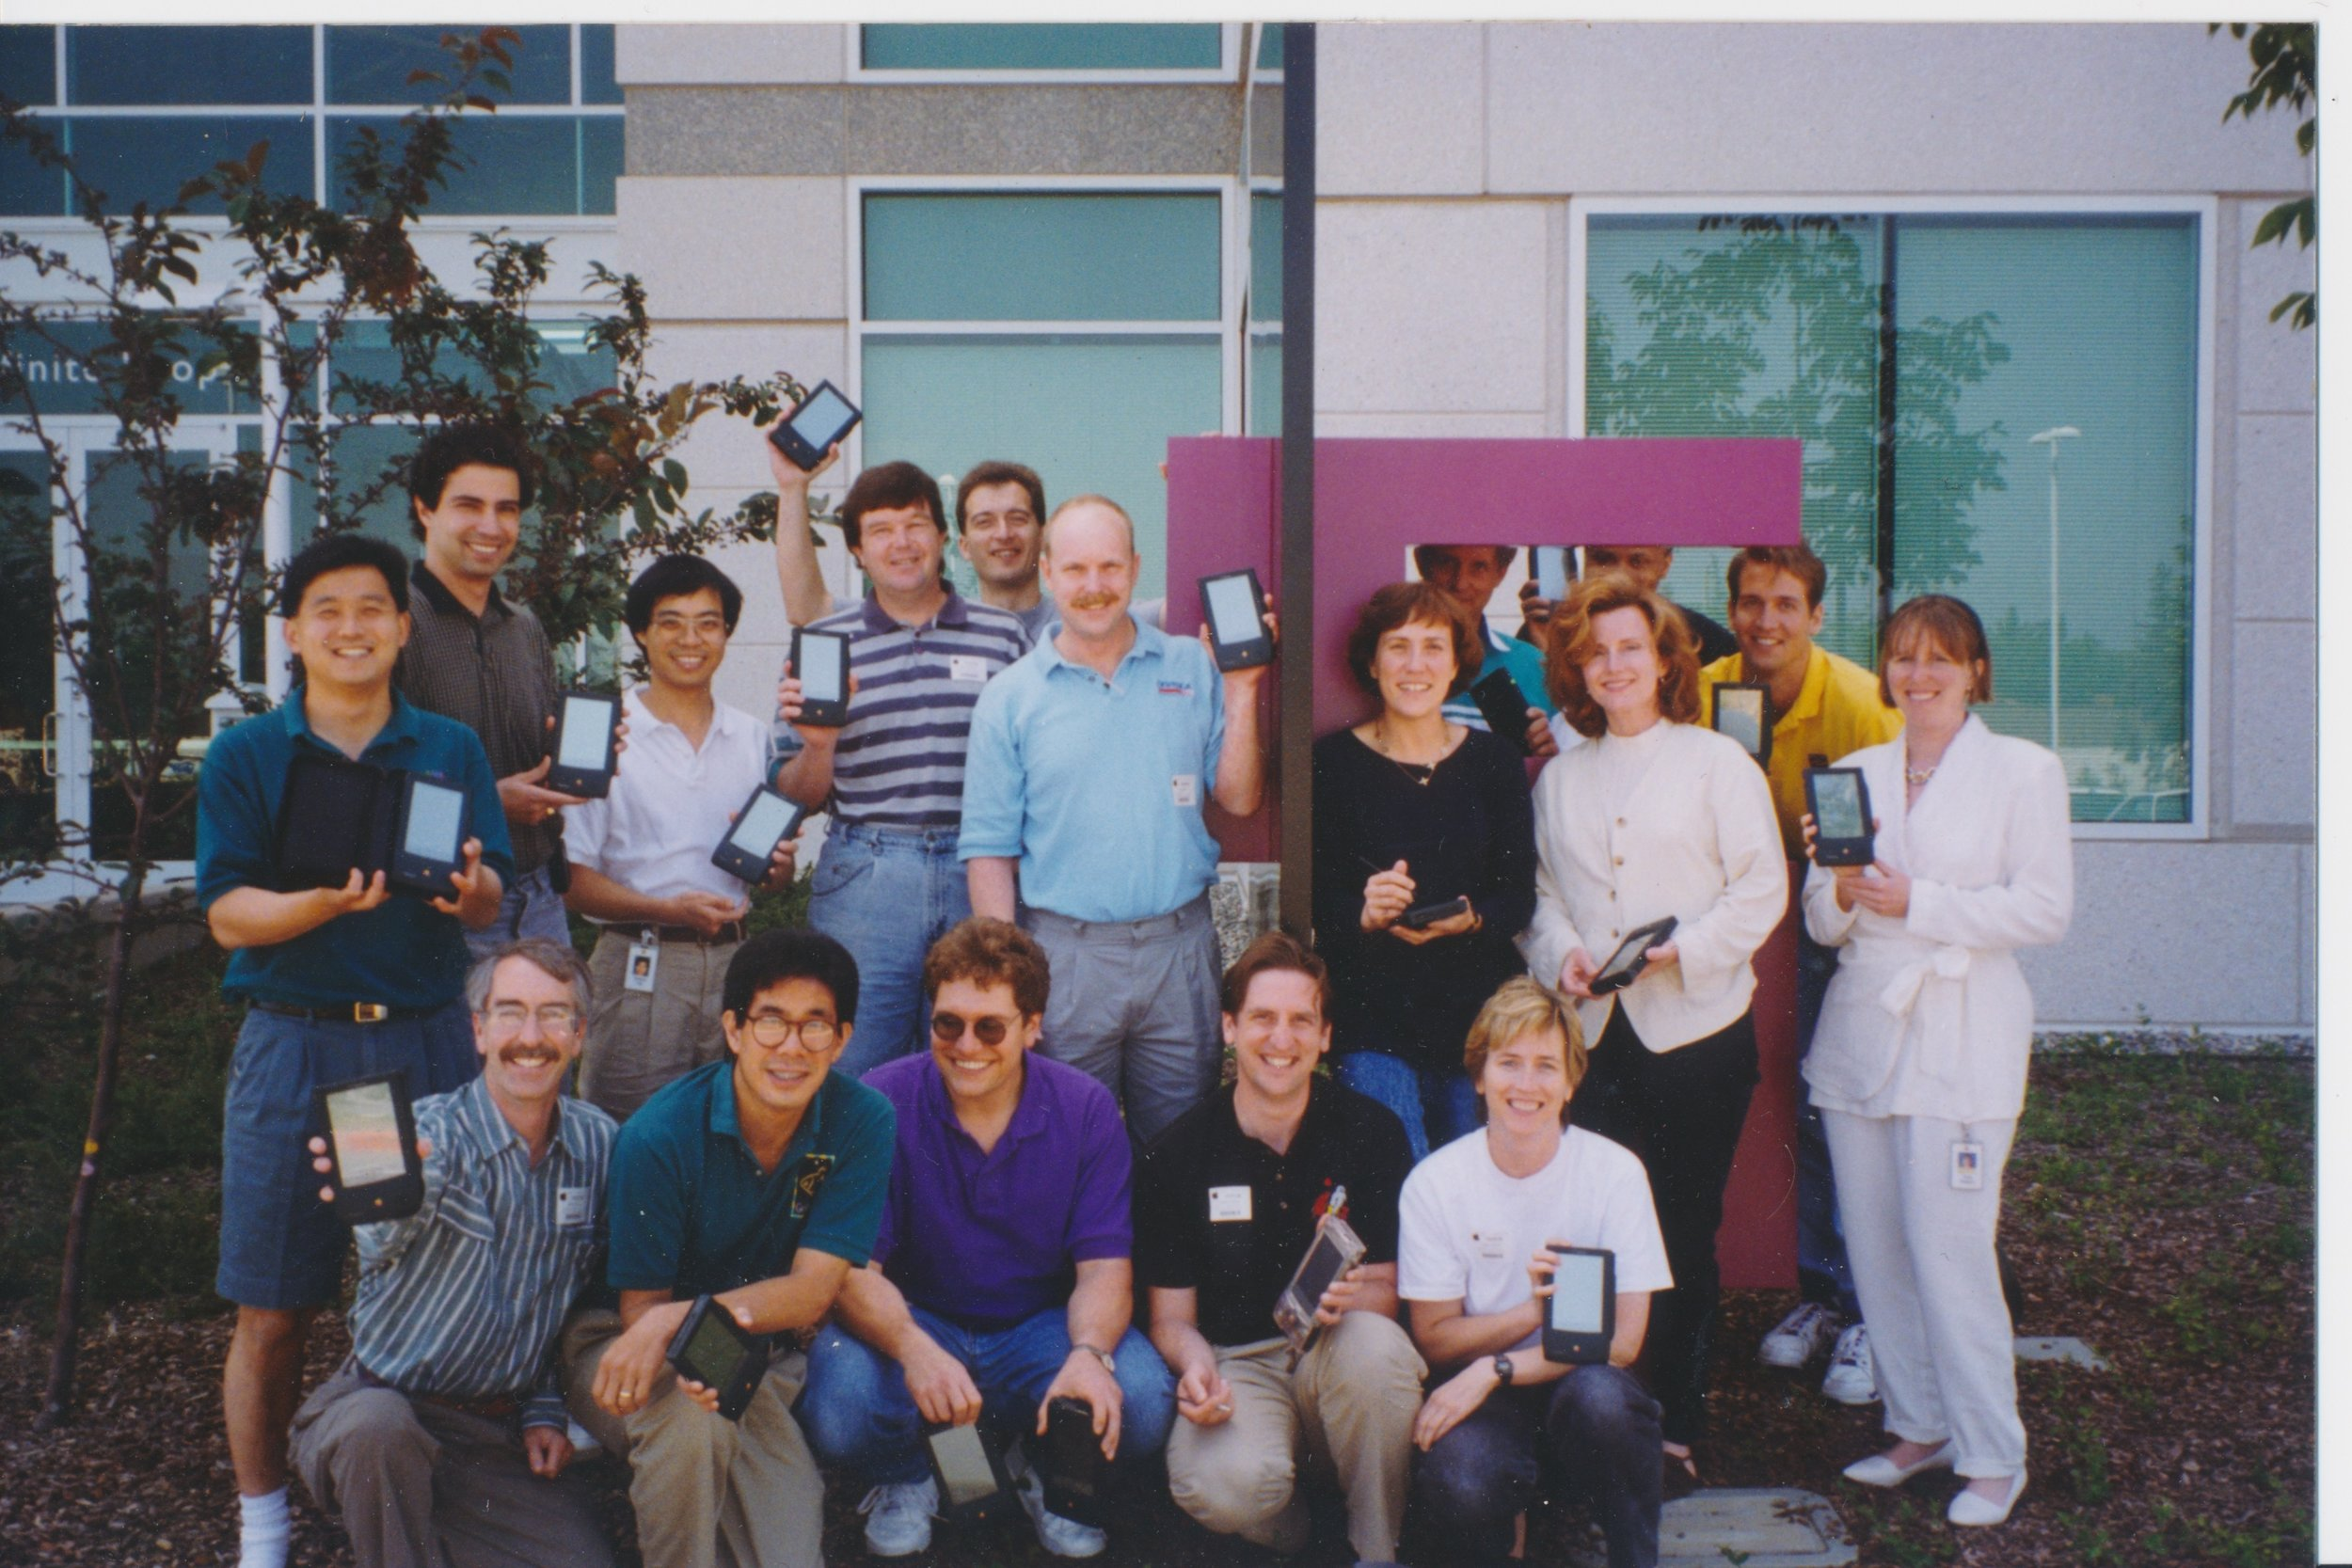 Newton Programming Essentials 1994. I'm second from the right in the front row (with the clear case 110). The person behind me is the instructor, Kent Beck of Extreme Programming fame.